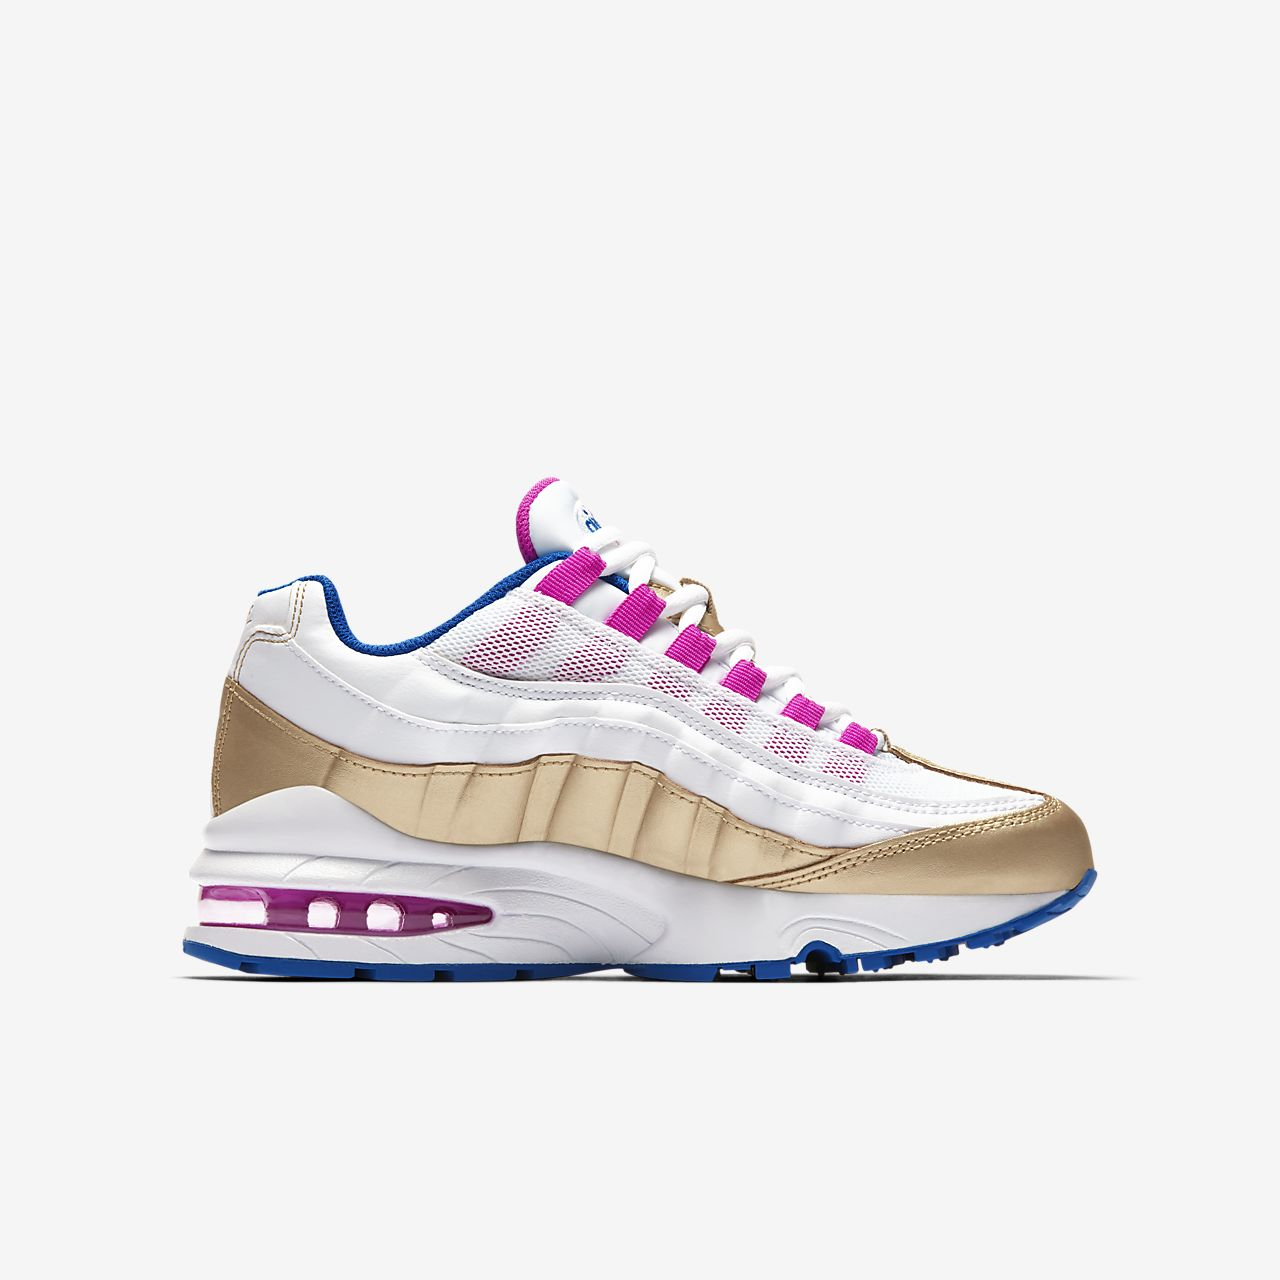 nike air max 95 se blue nz